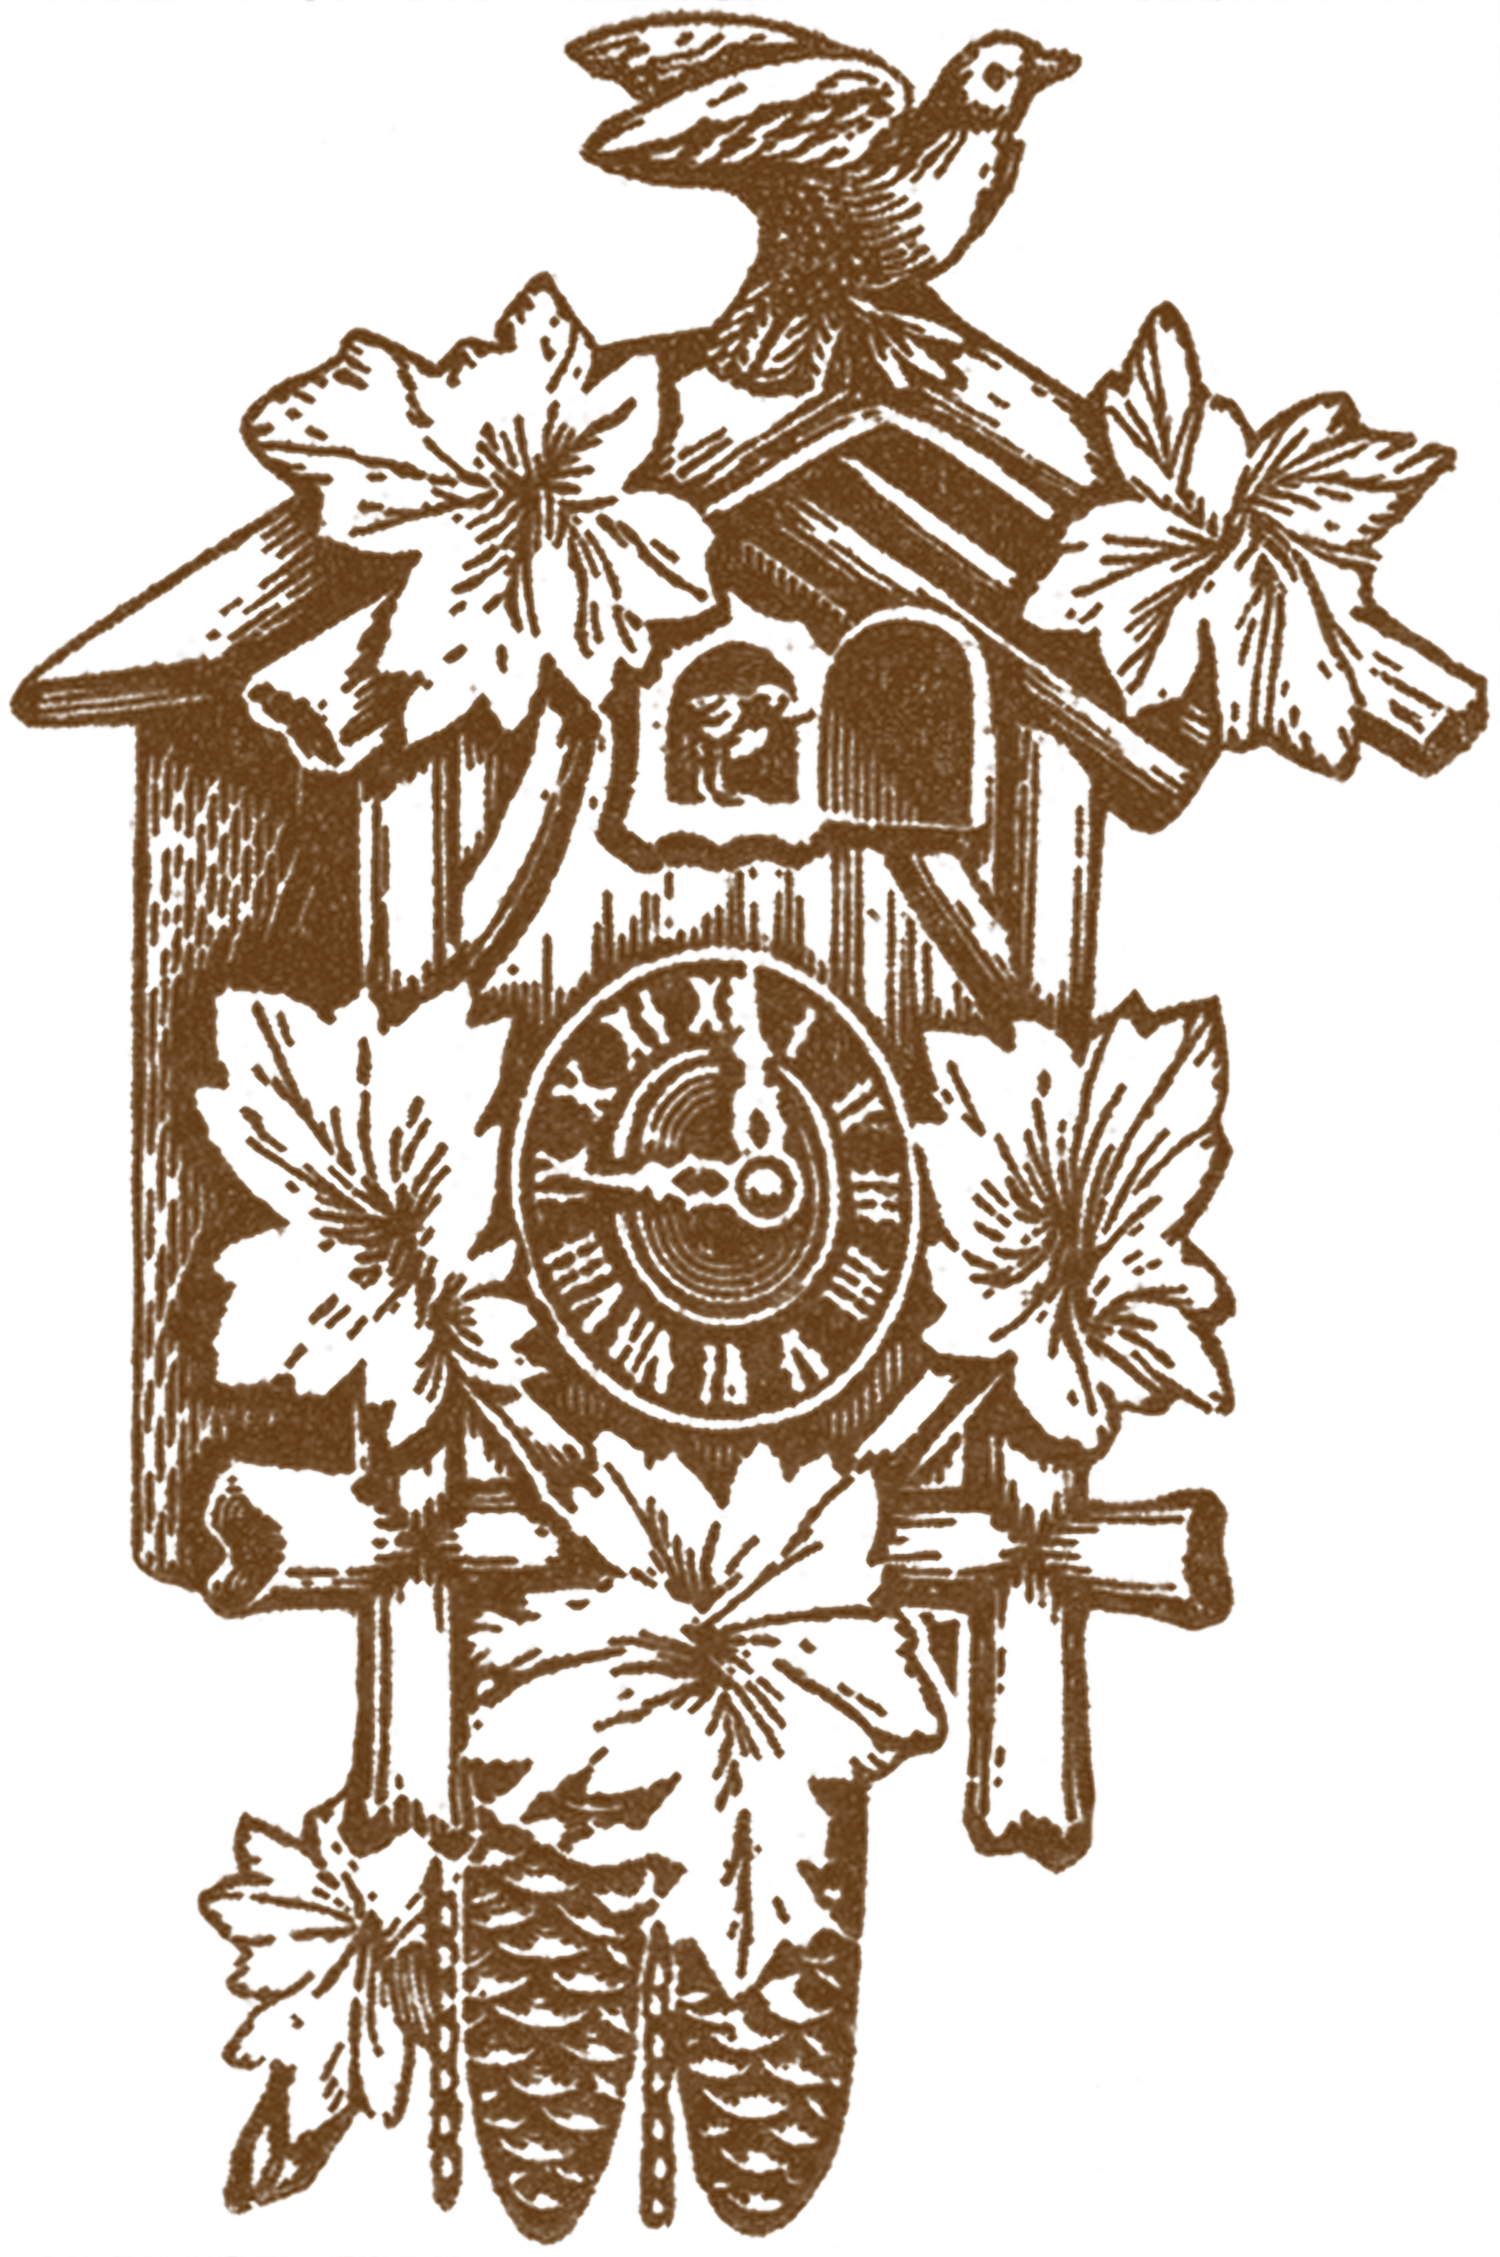 Vintage Cuckoo Clock Images The Graphics Fairy